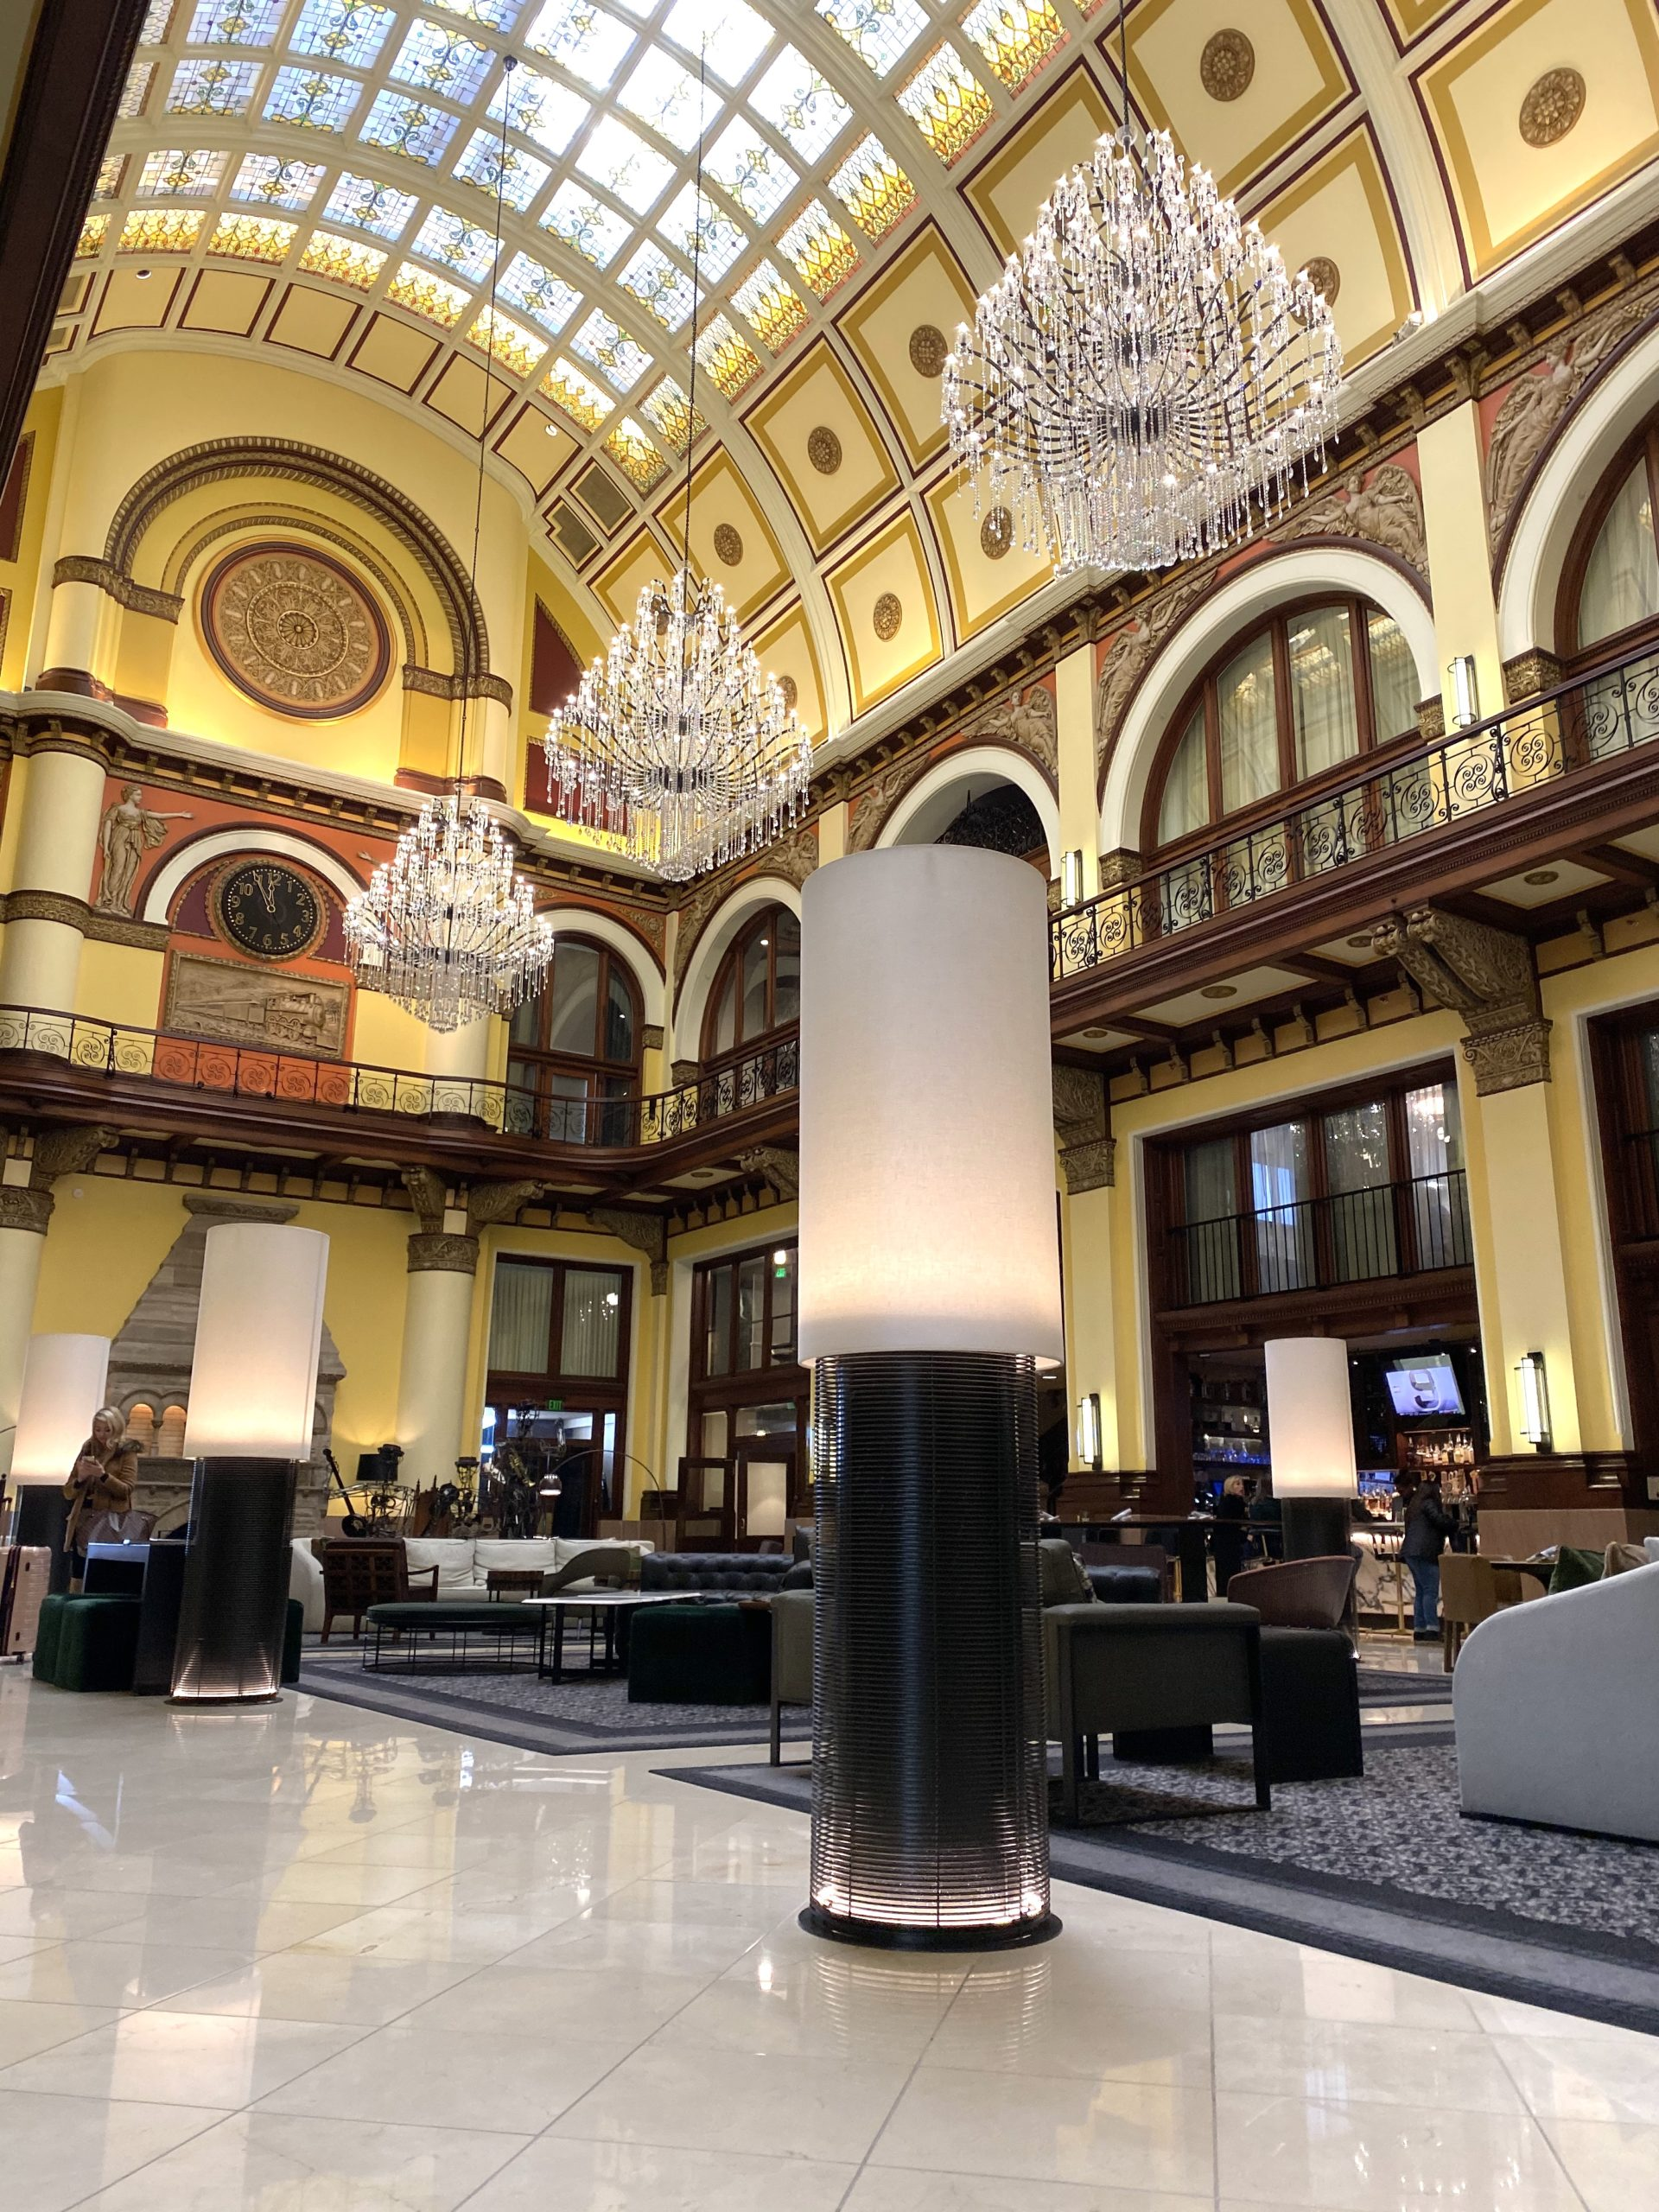 The stunning beauty of the Union Station Hotel lobby extends all the way to stained-glass ceilings.